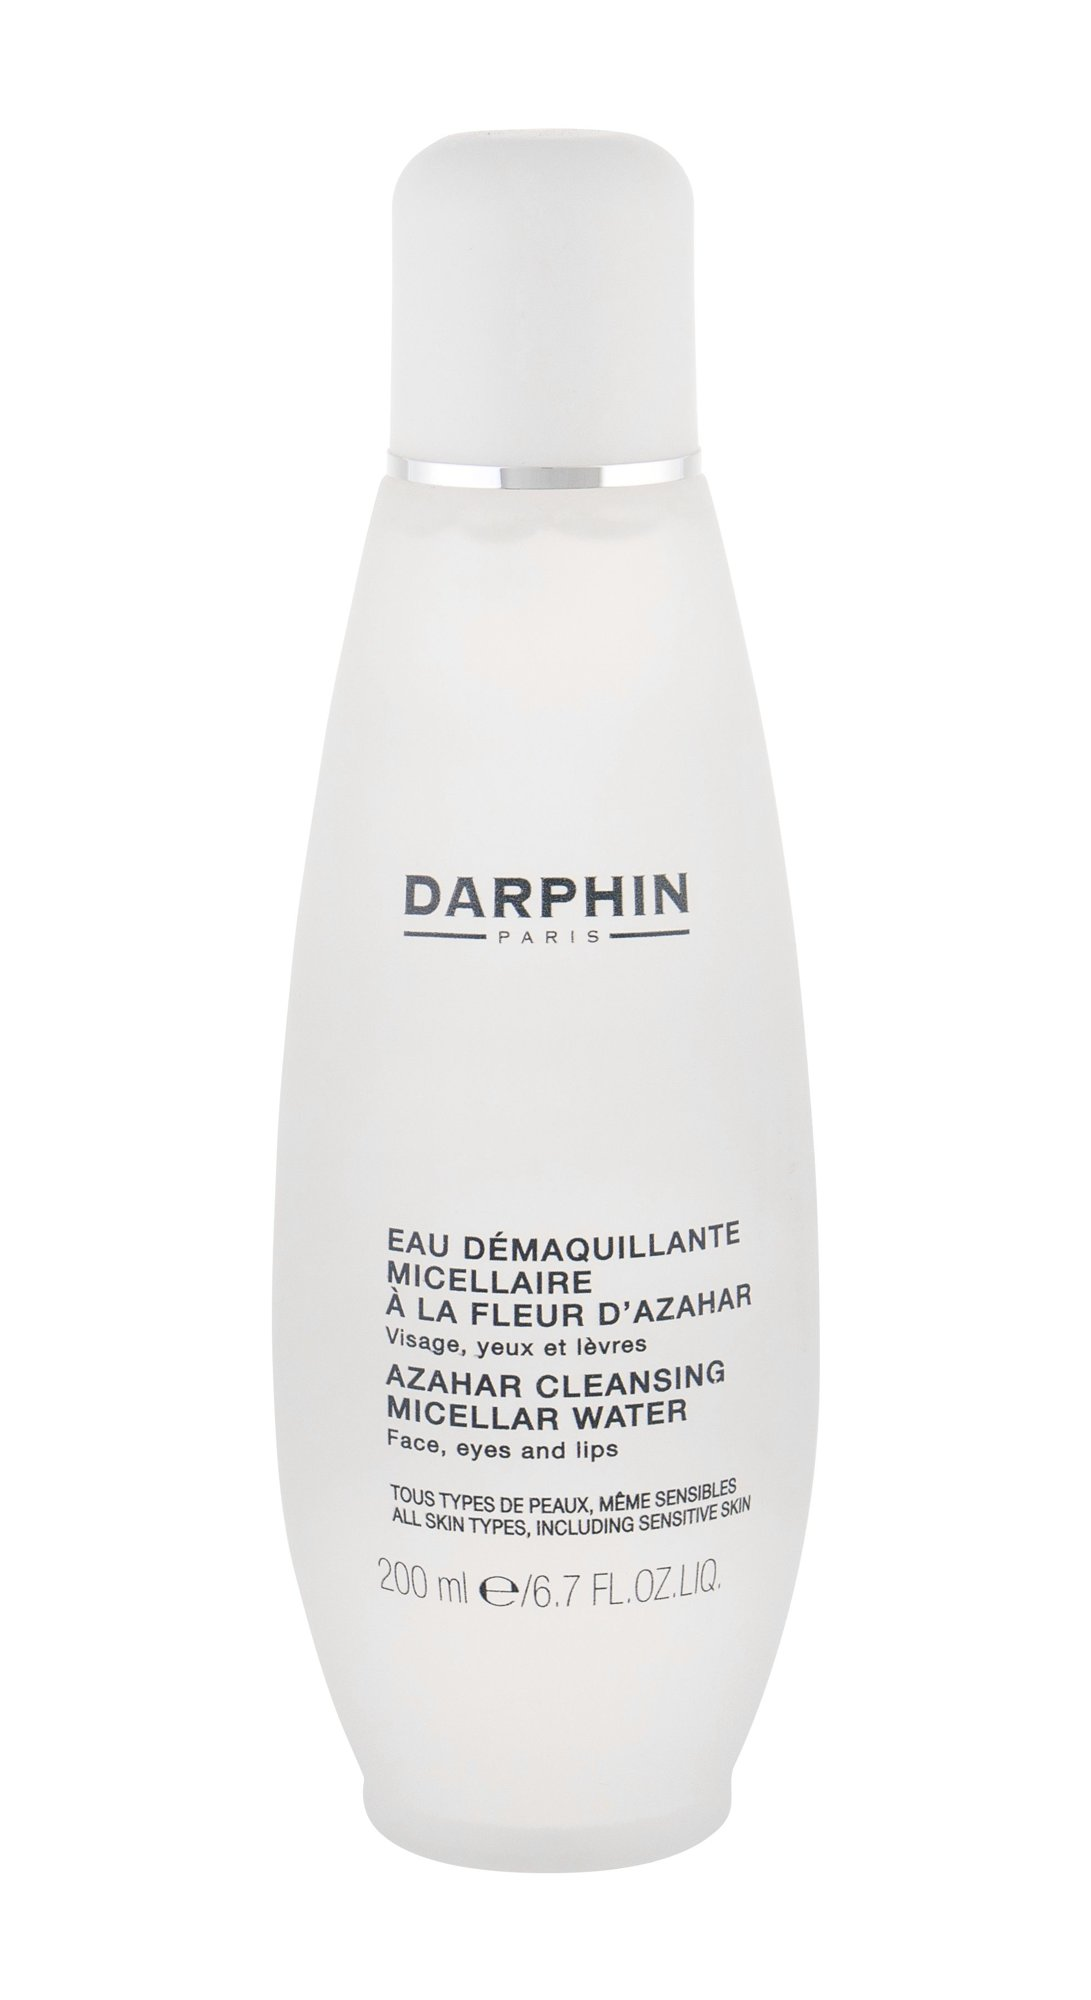 Darphin Cleansers Cleansing Water 200ml  Azahar Cleansing Micellar Water